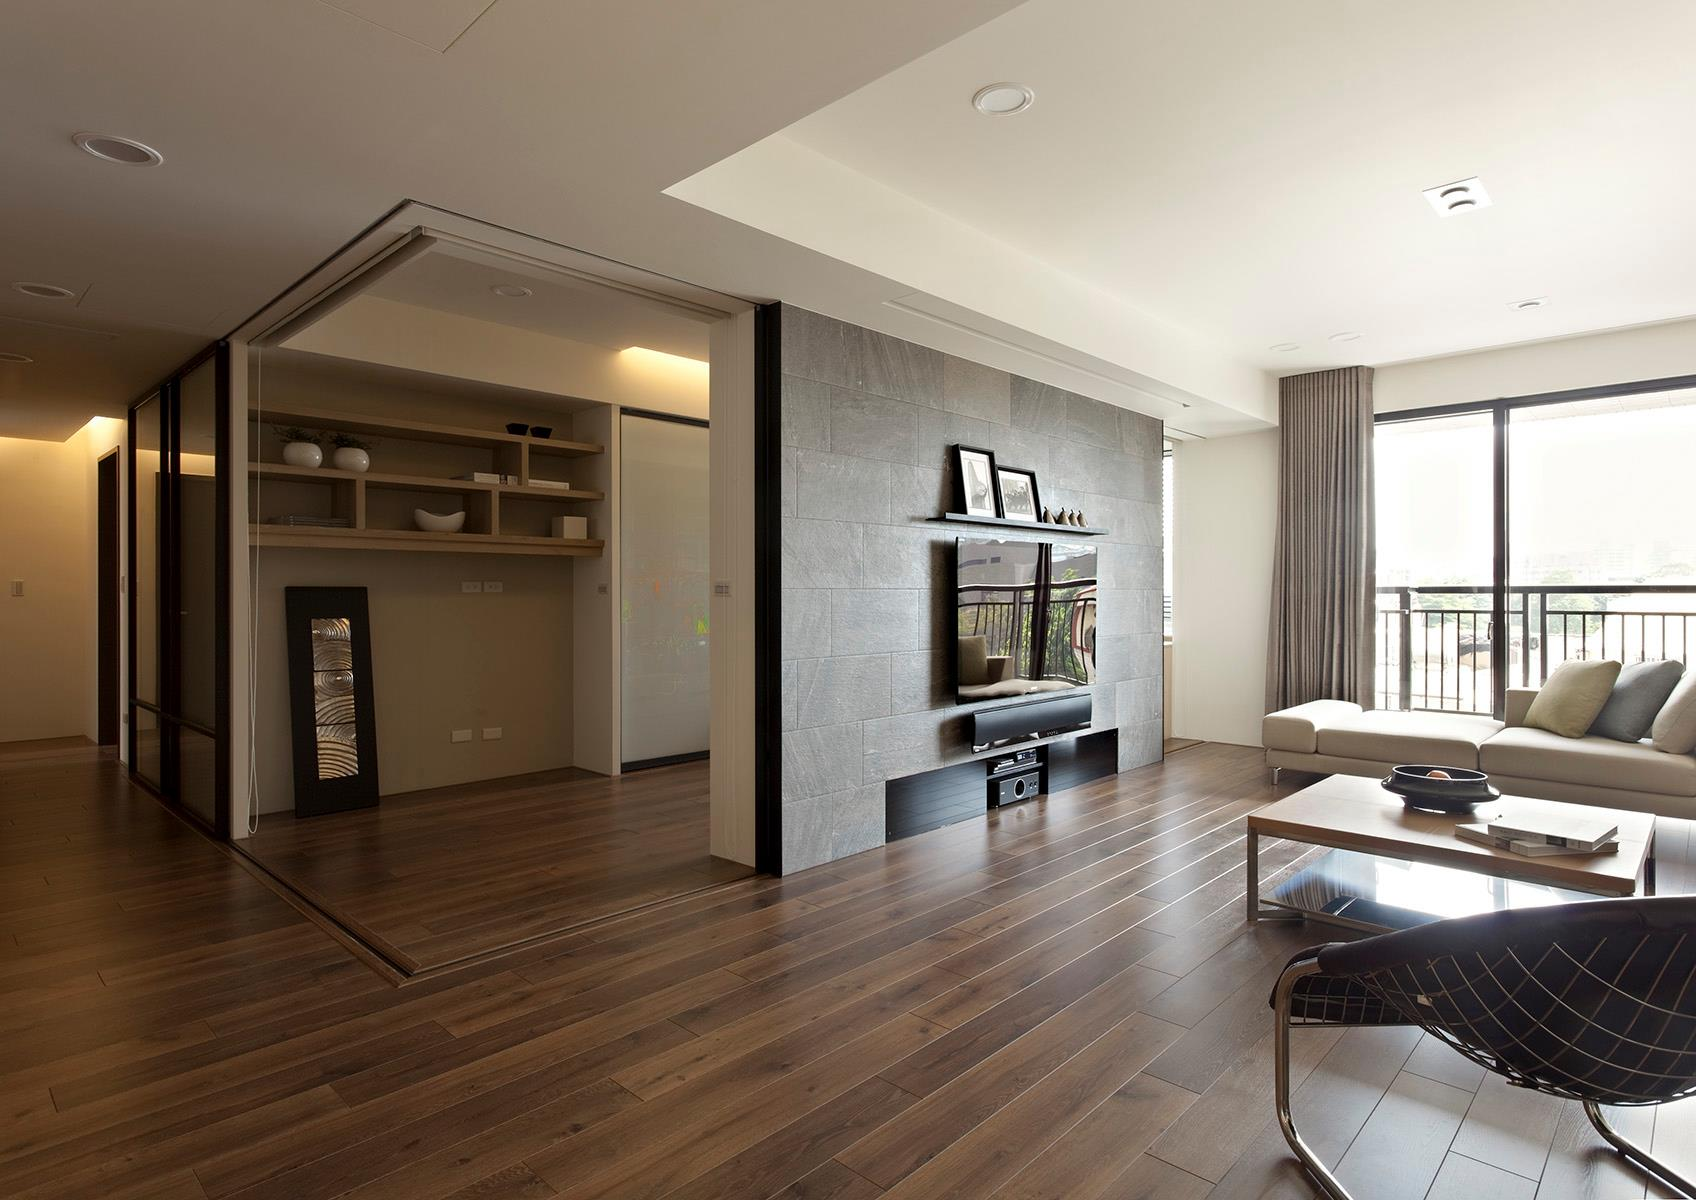 Apartment Retractable Wall by Fertility Design (8)